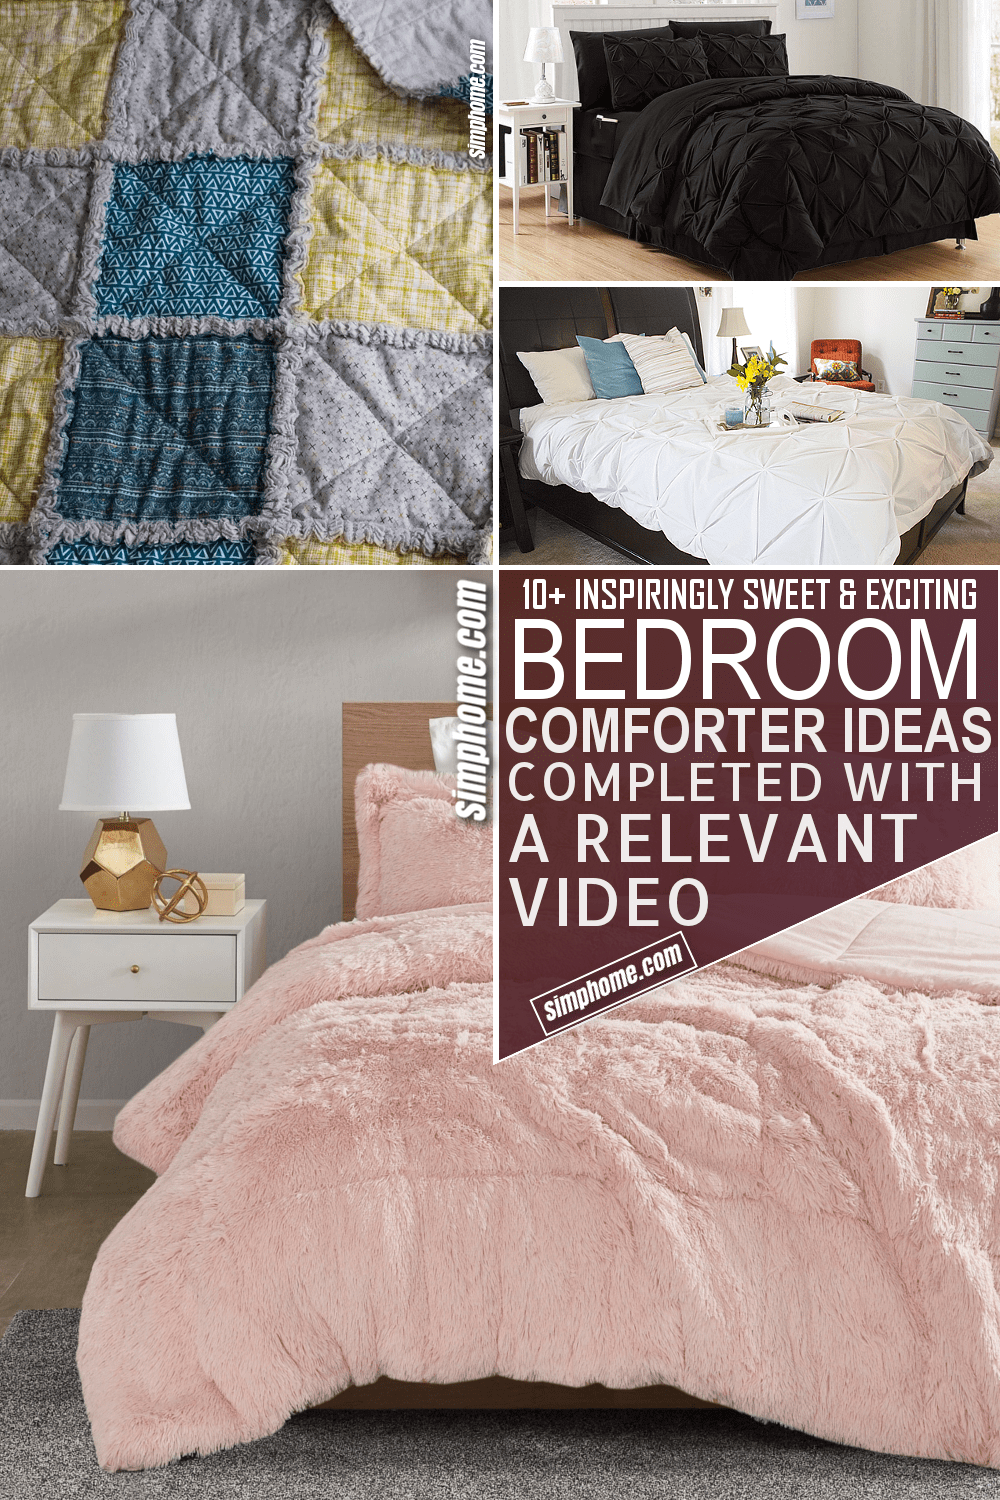 10 Bedroom Comforter Ideas via Simphome.com Pinterest Featured Image